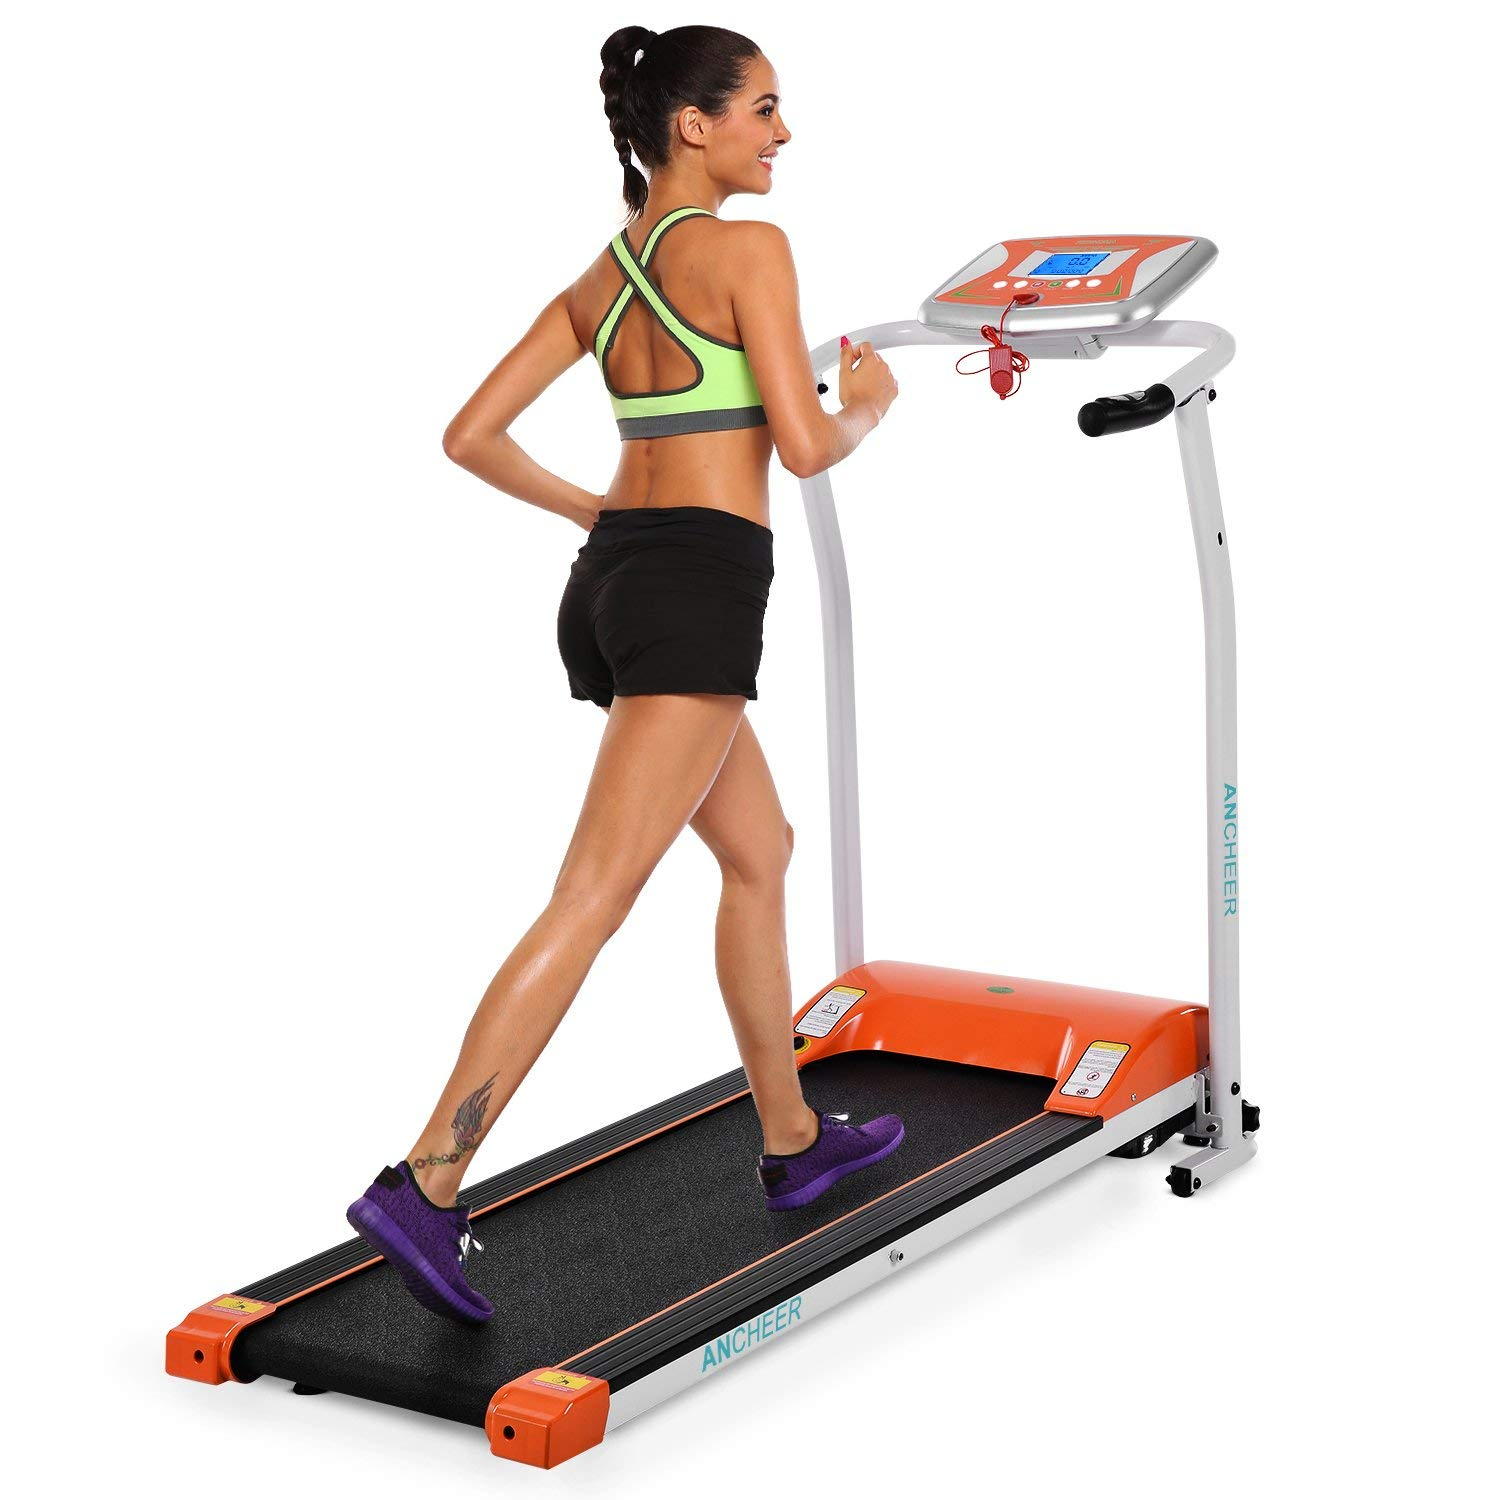 ANCHEER Folding Electric Treadmill, Easy Assembly Motorized Running Machine with Rolling Wheels (Orange)